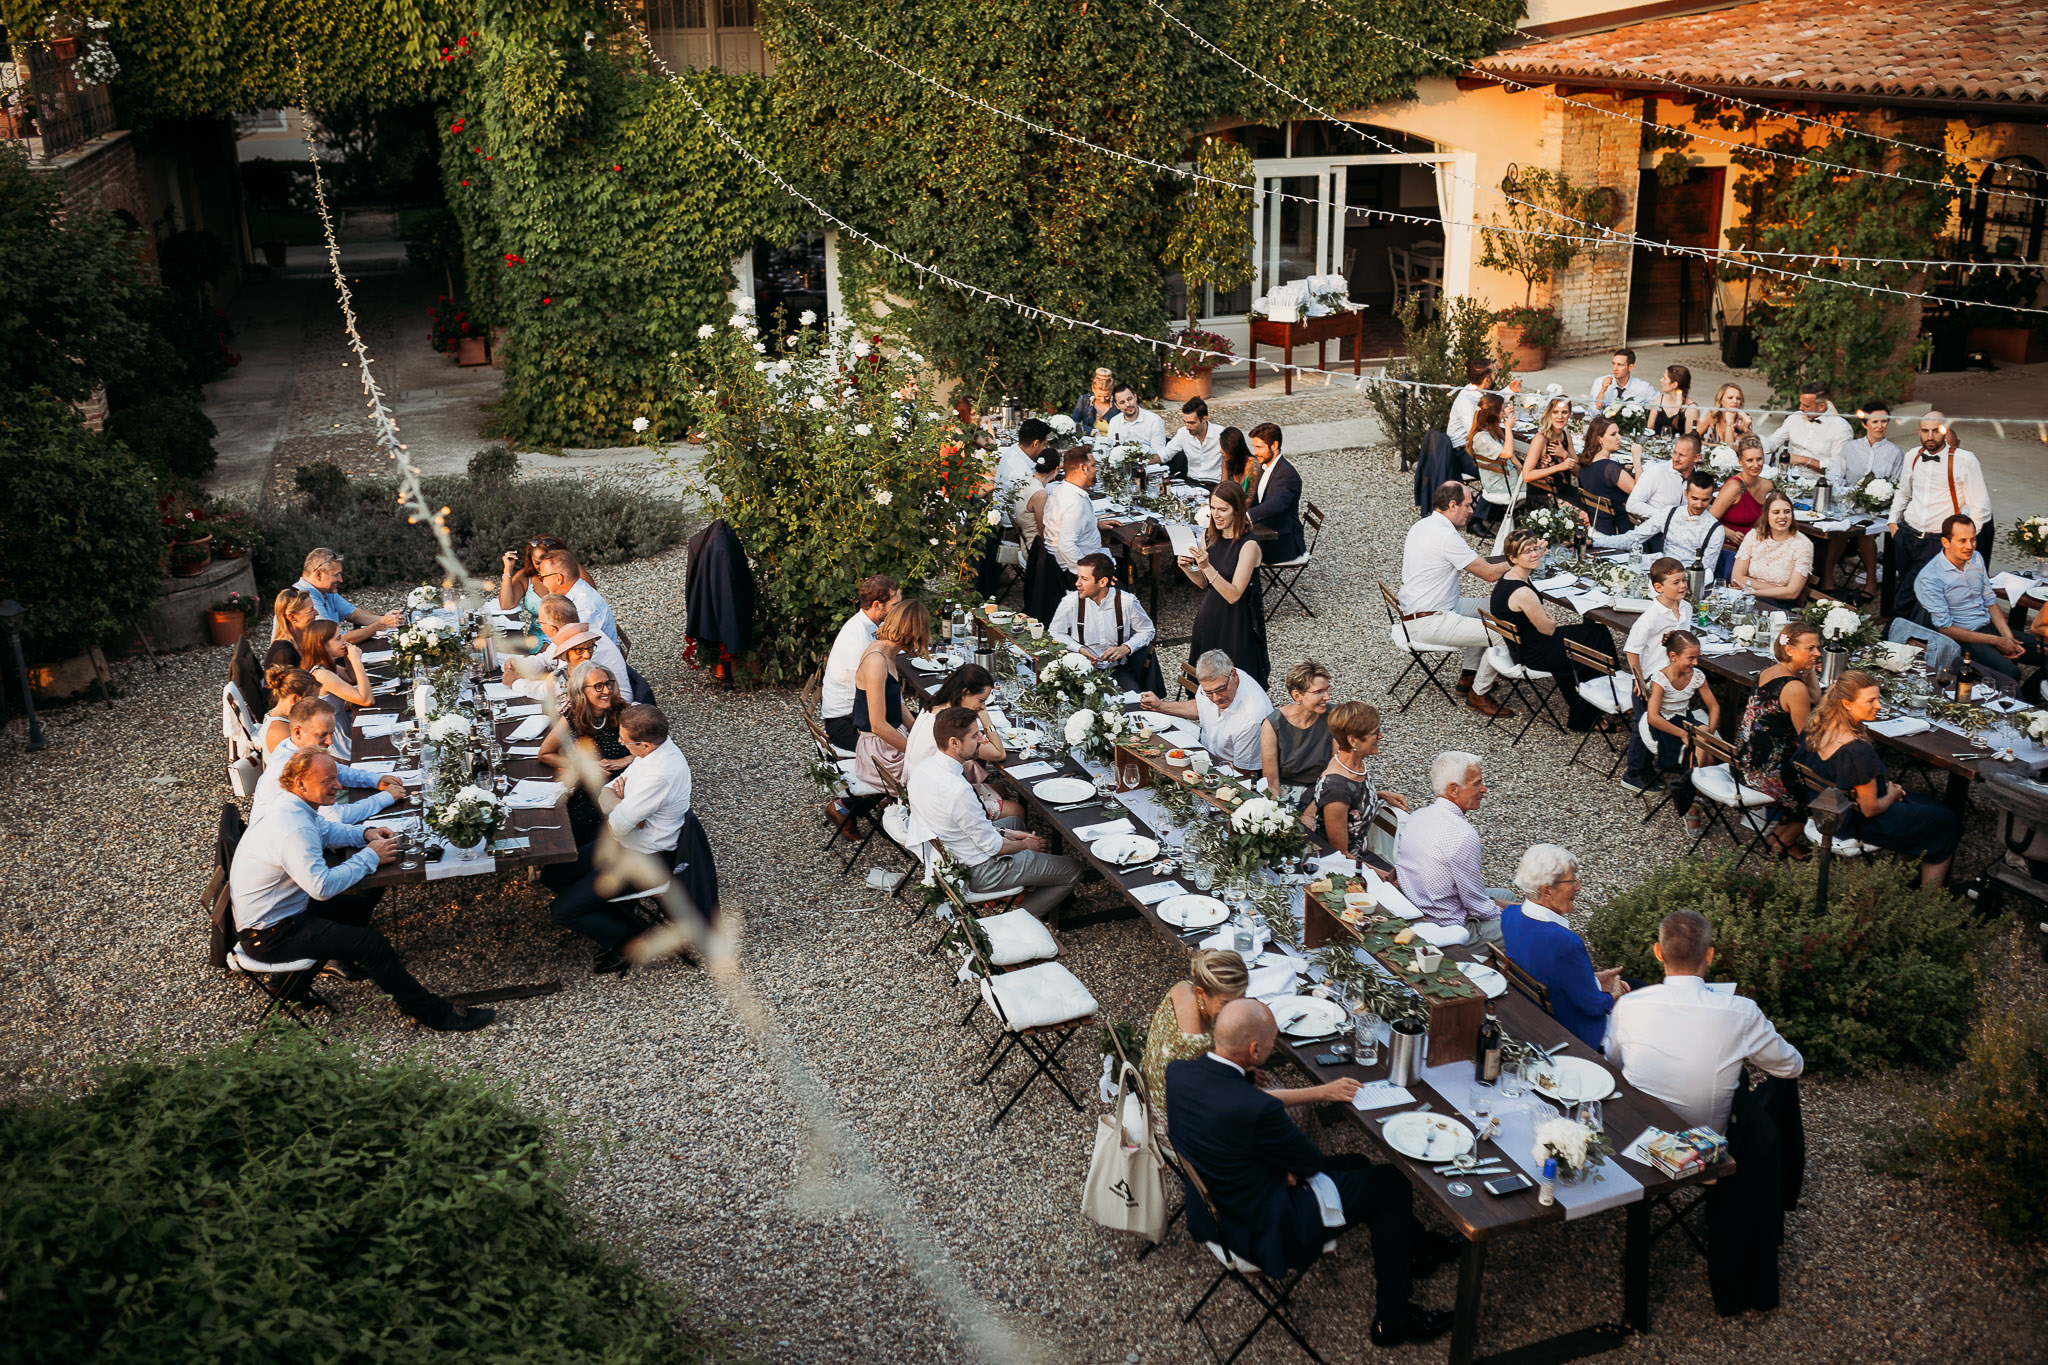 Courtyard wedding dinner with decorated tables and libght bulb festoons at La Villa Hotel, Mombaruzzo